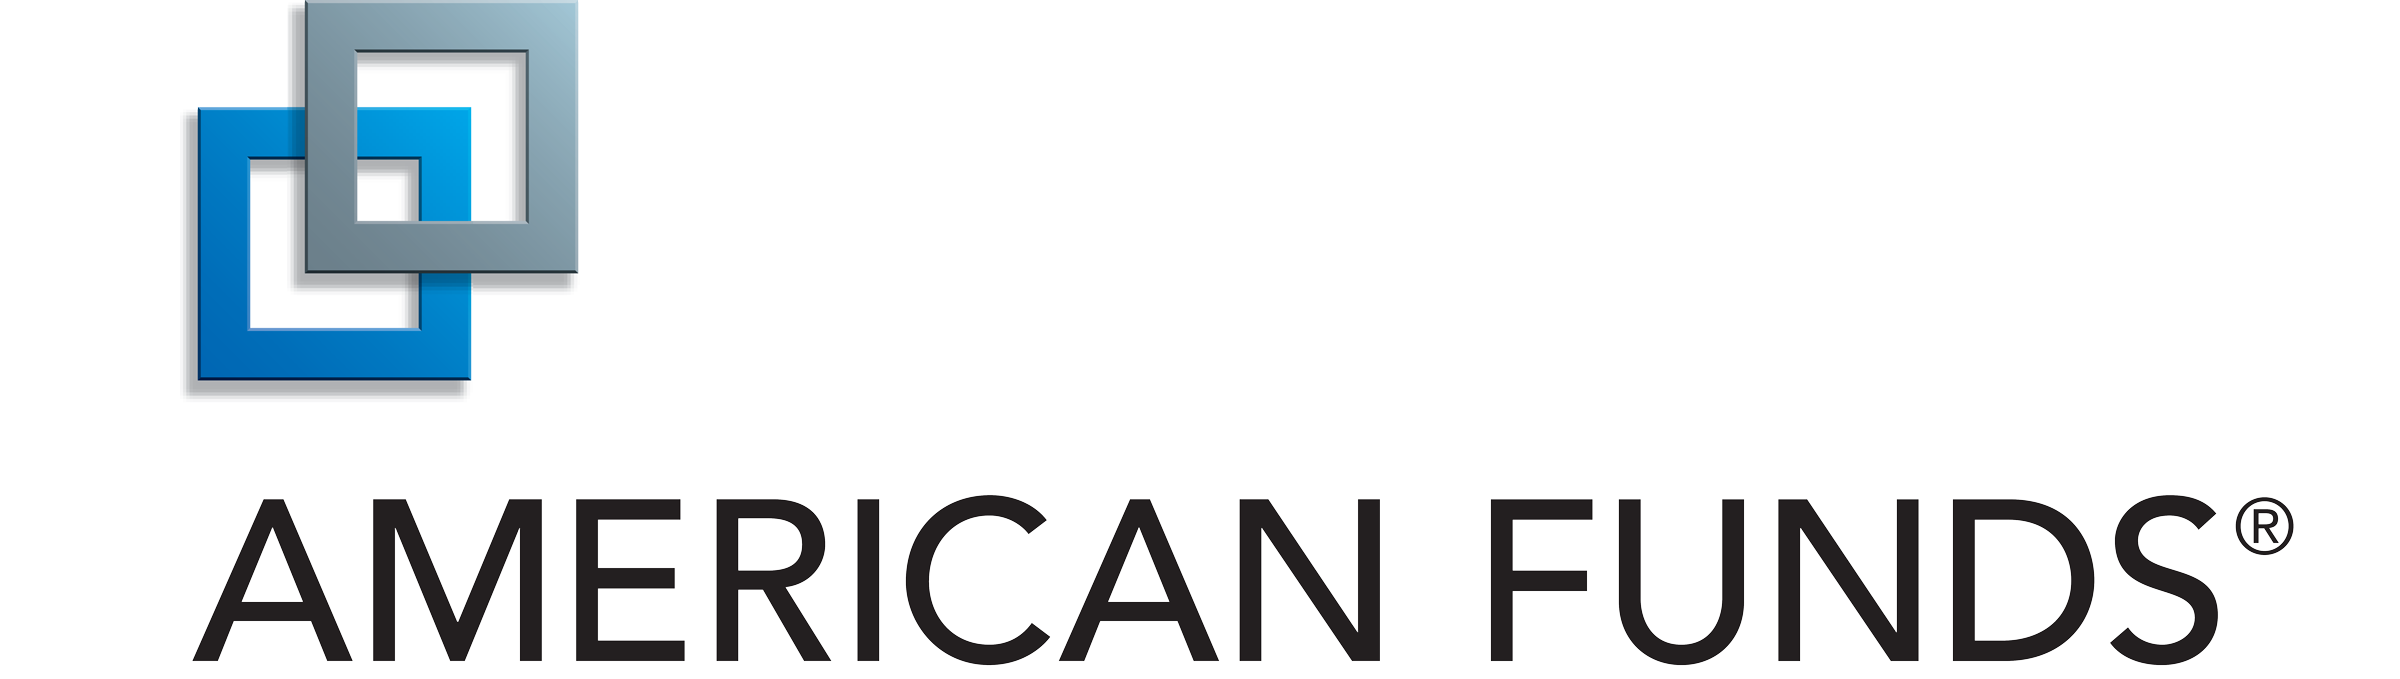 component-invest-american-funds-logo